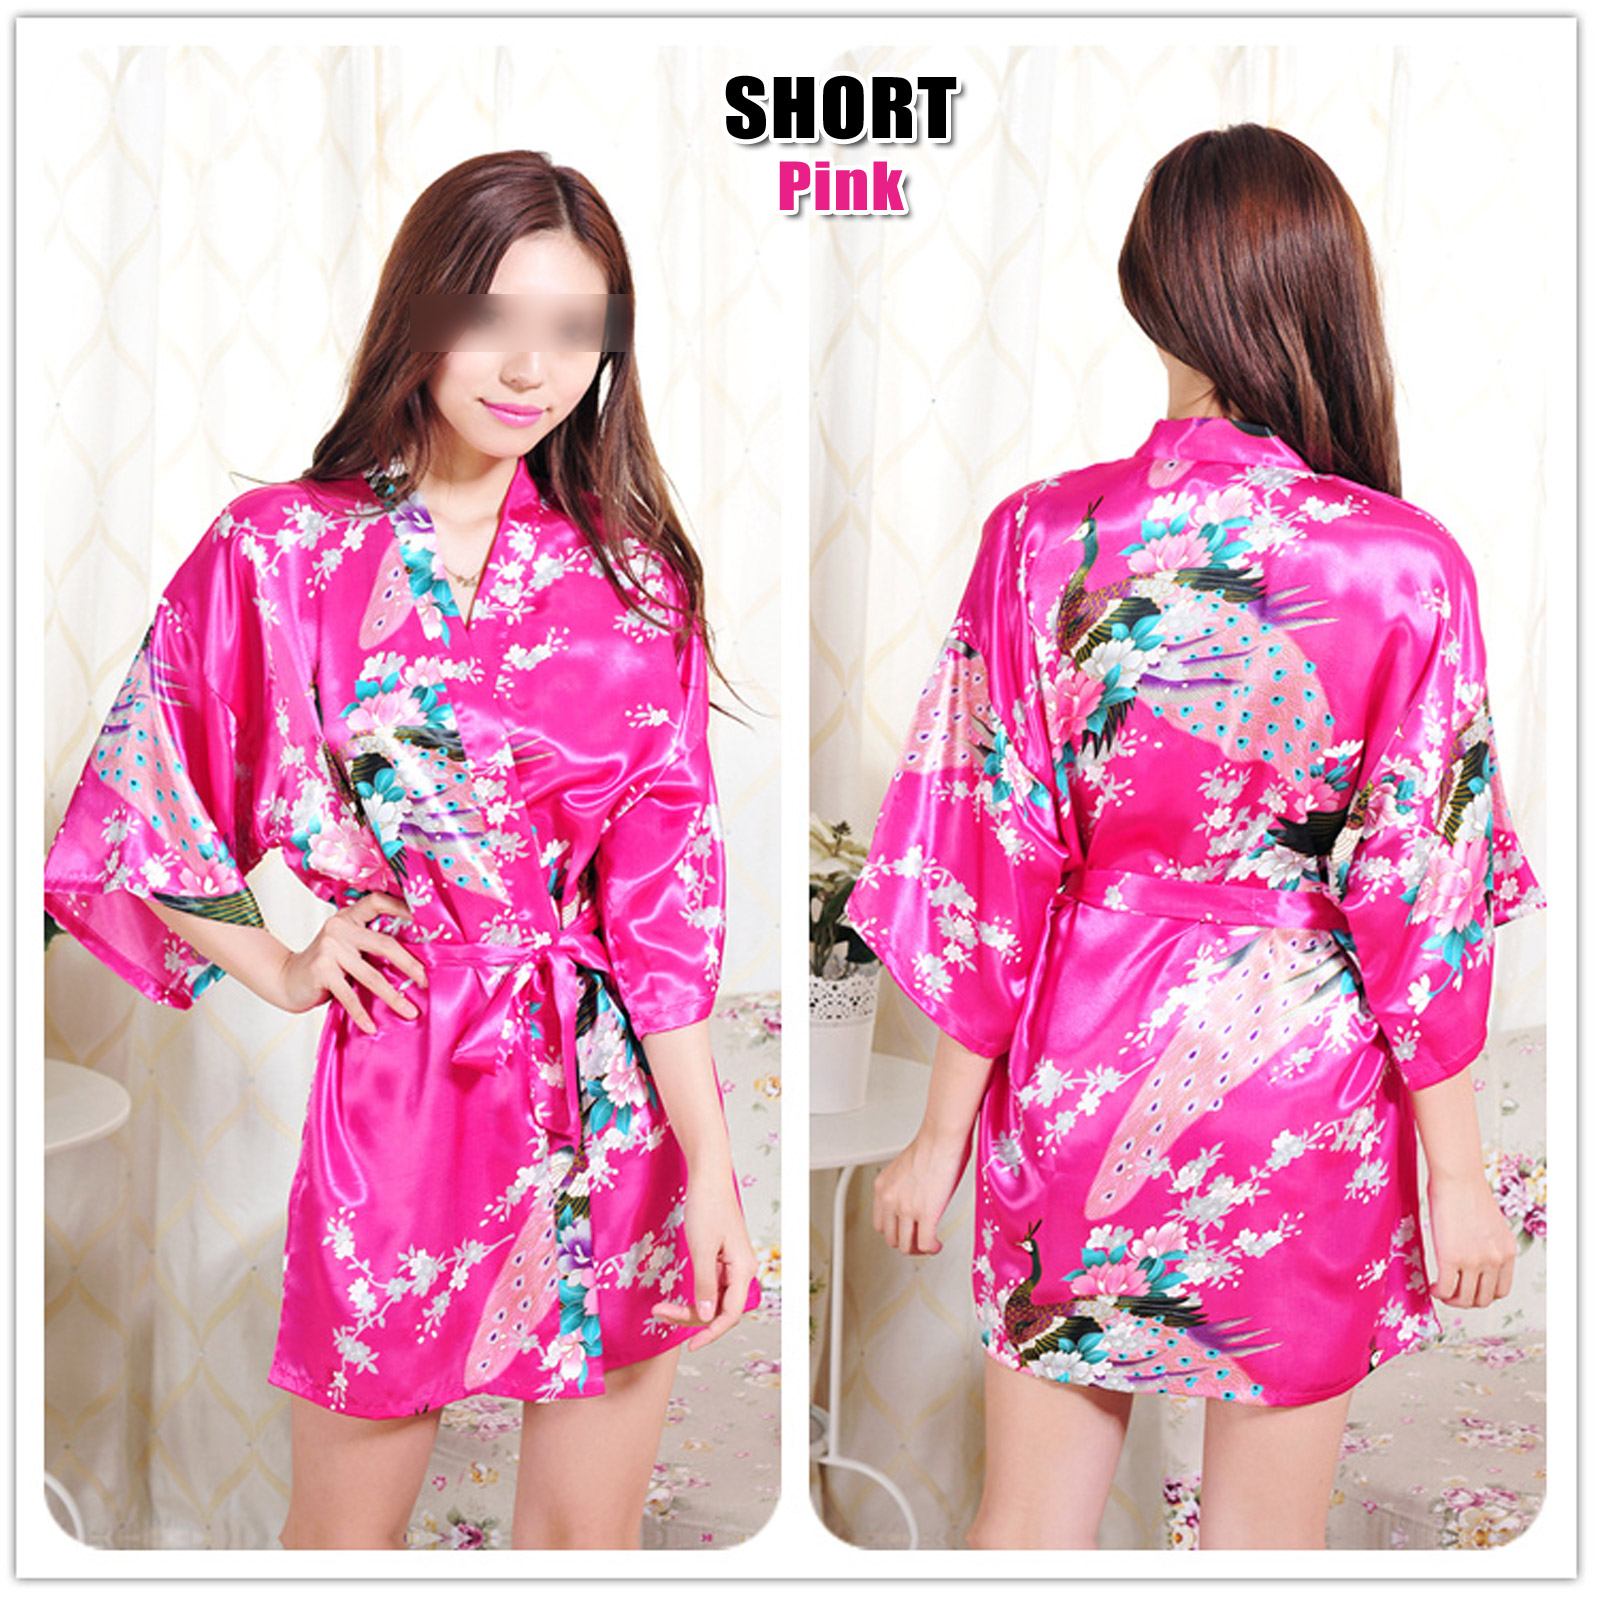 Details about FLORAL SATIN ROBE Kimono Dressing Gown Vintage Wedding Bride Bridesmaid Party